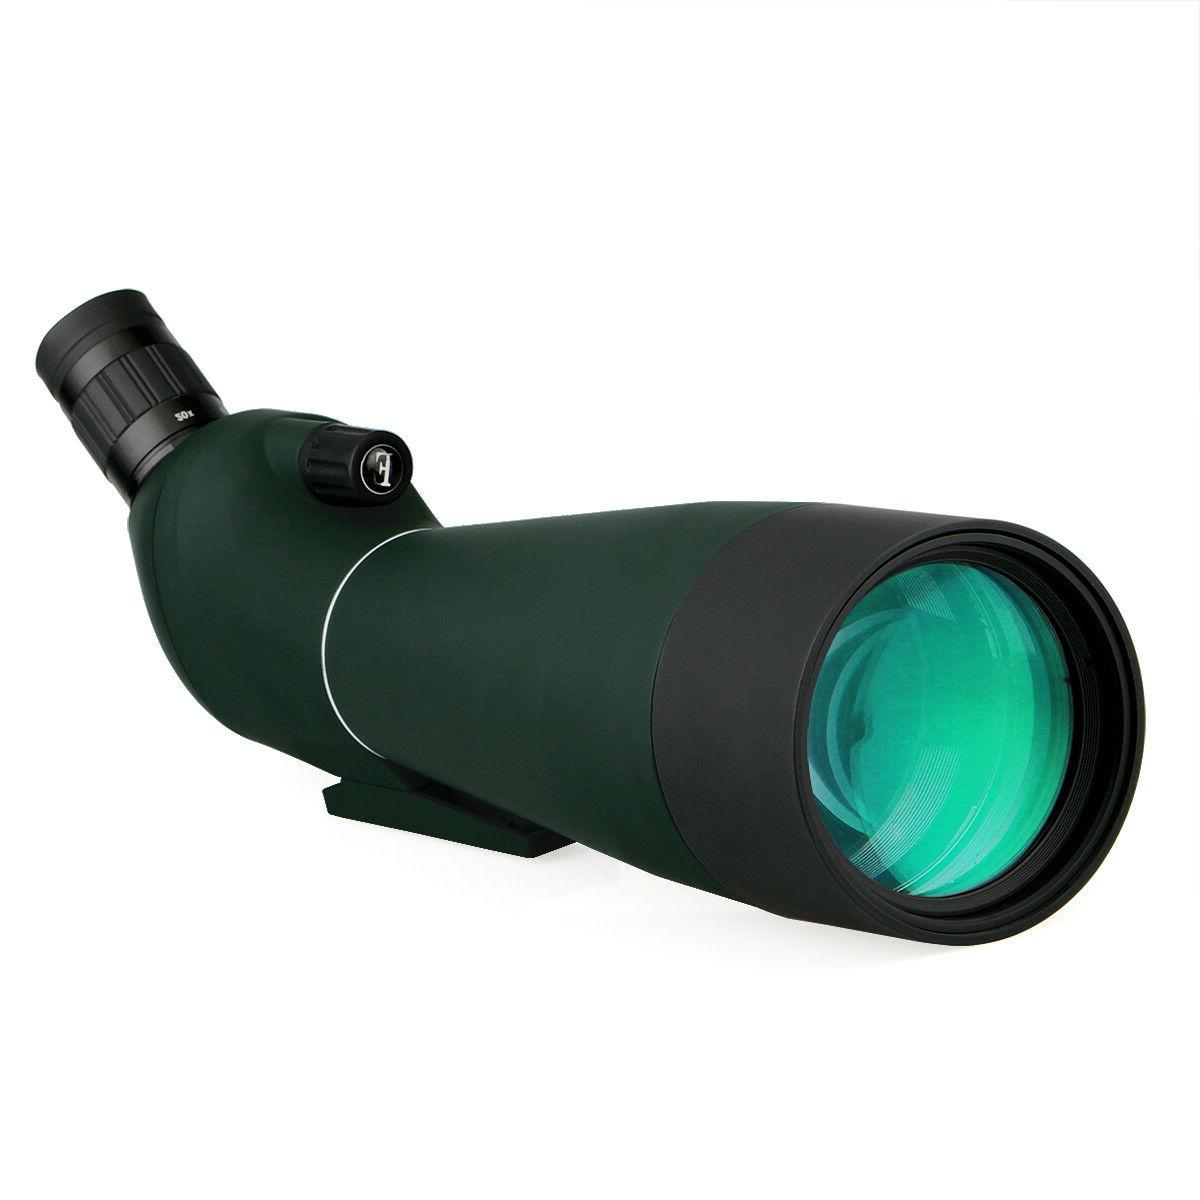 SVBONY 20-60x80 Angled Spotting Bird US